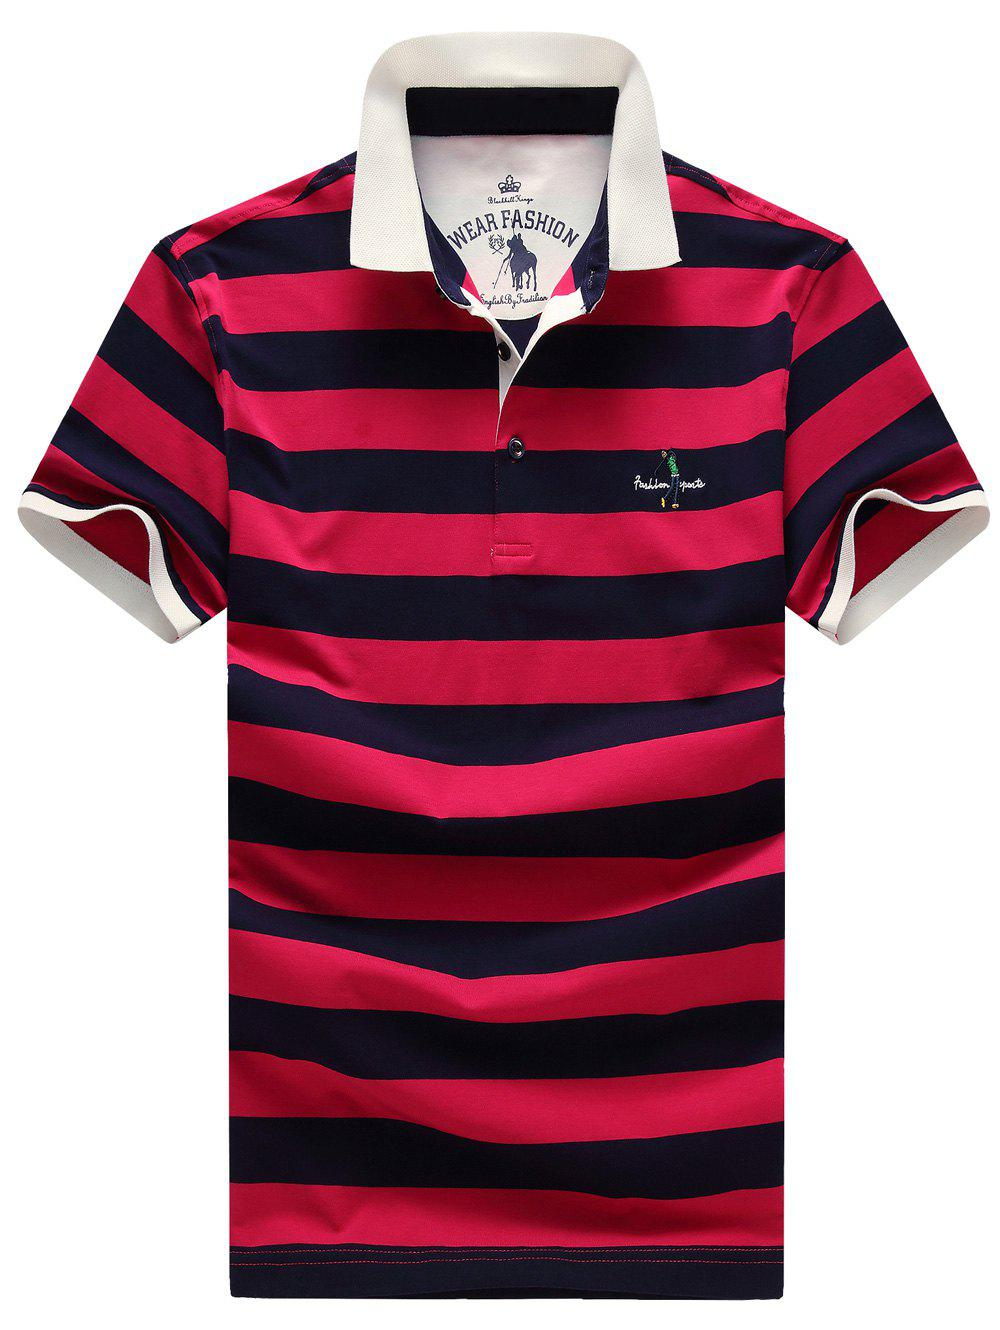 Casual Men's Plus Size Turn-Down Collar Color Block Striped Short Sleeve Polo T-Shirt - ROSE XL